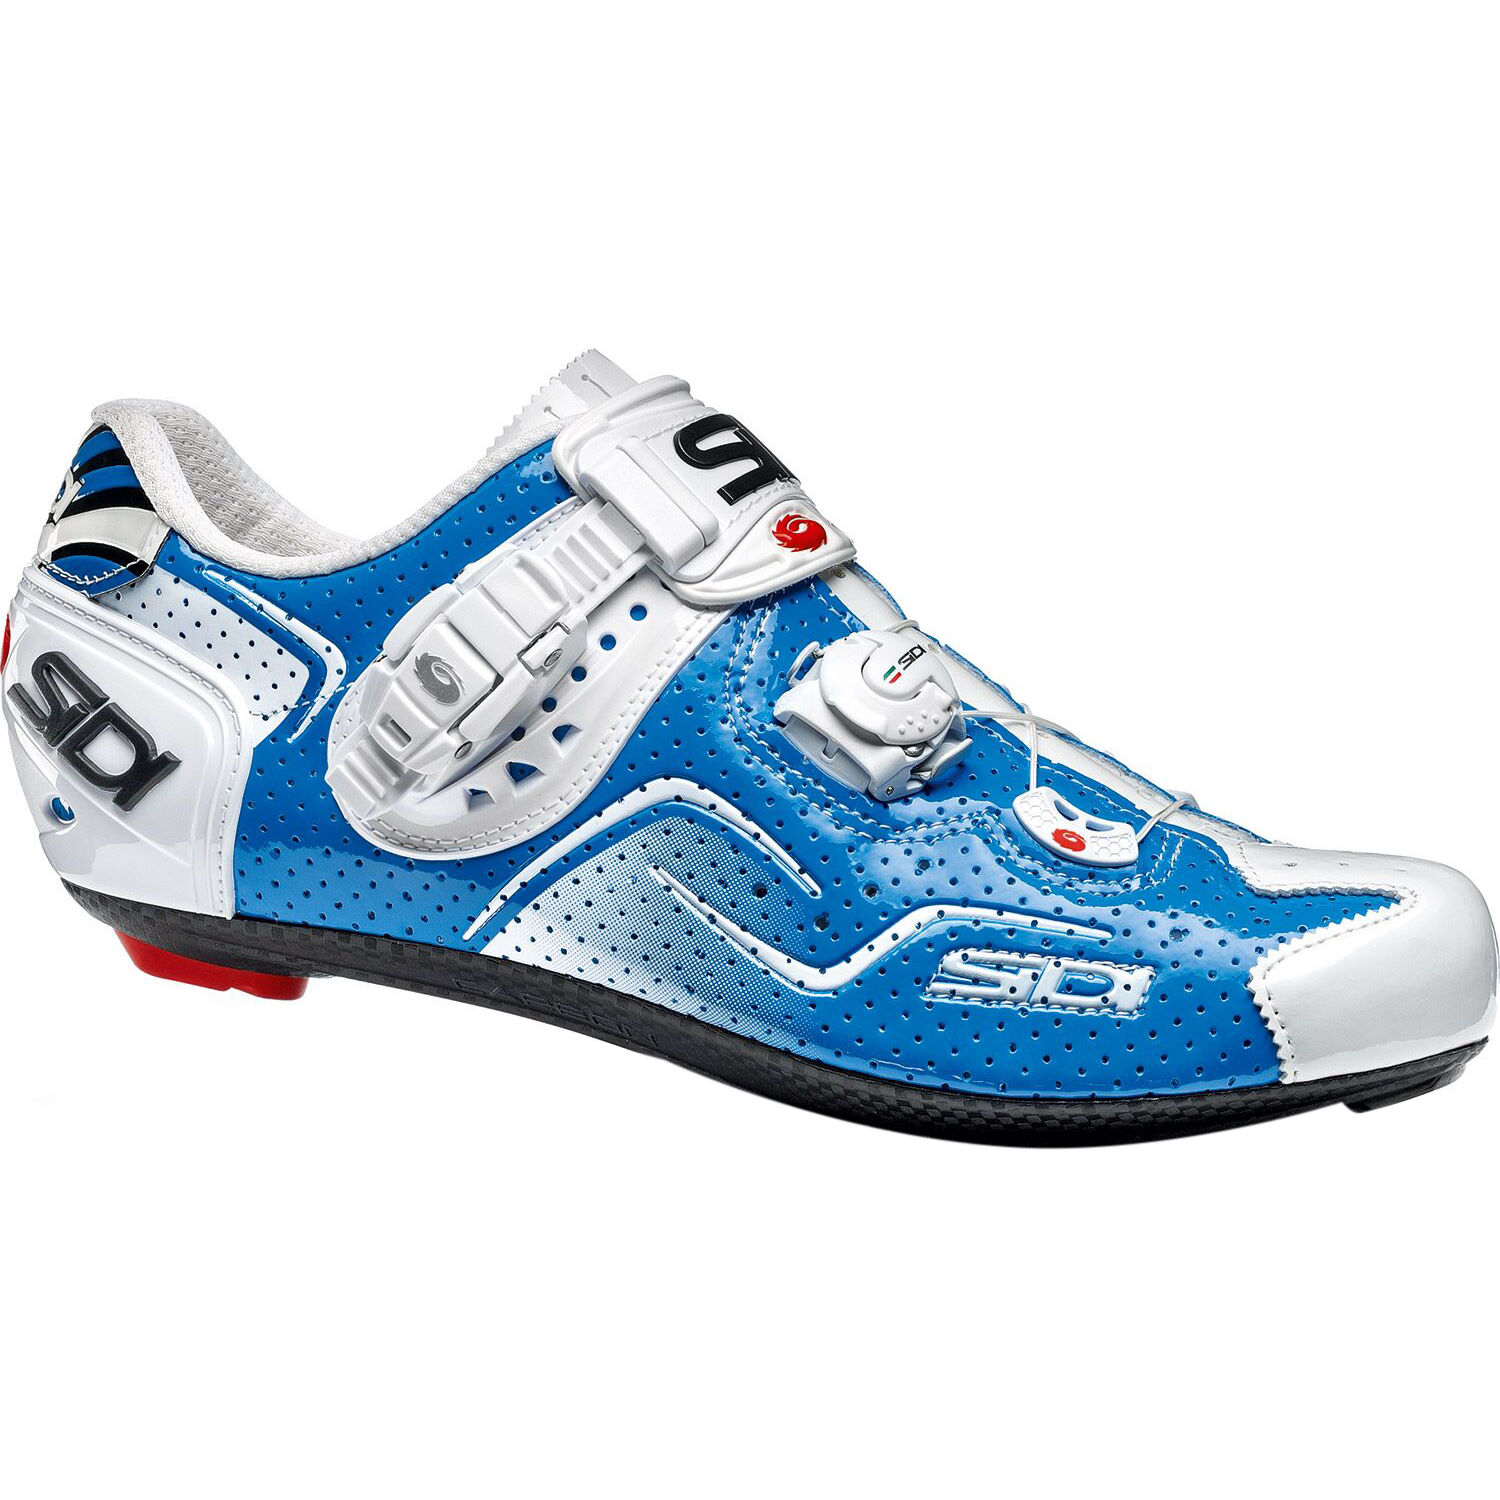 wiggle sidi kaos air road shoe road shoes. Black Bedroom Furniture Sets. Home Design Ideas